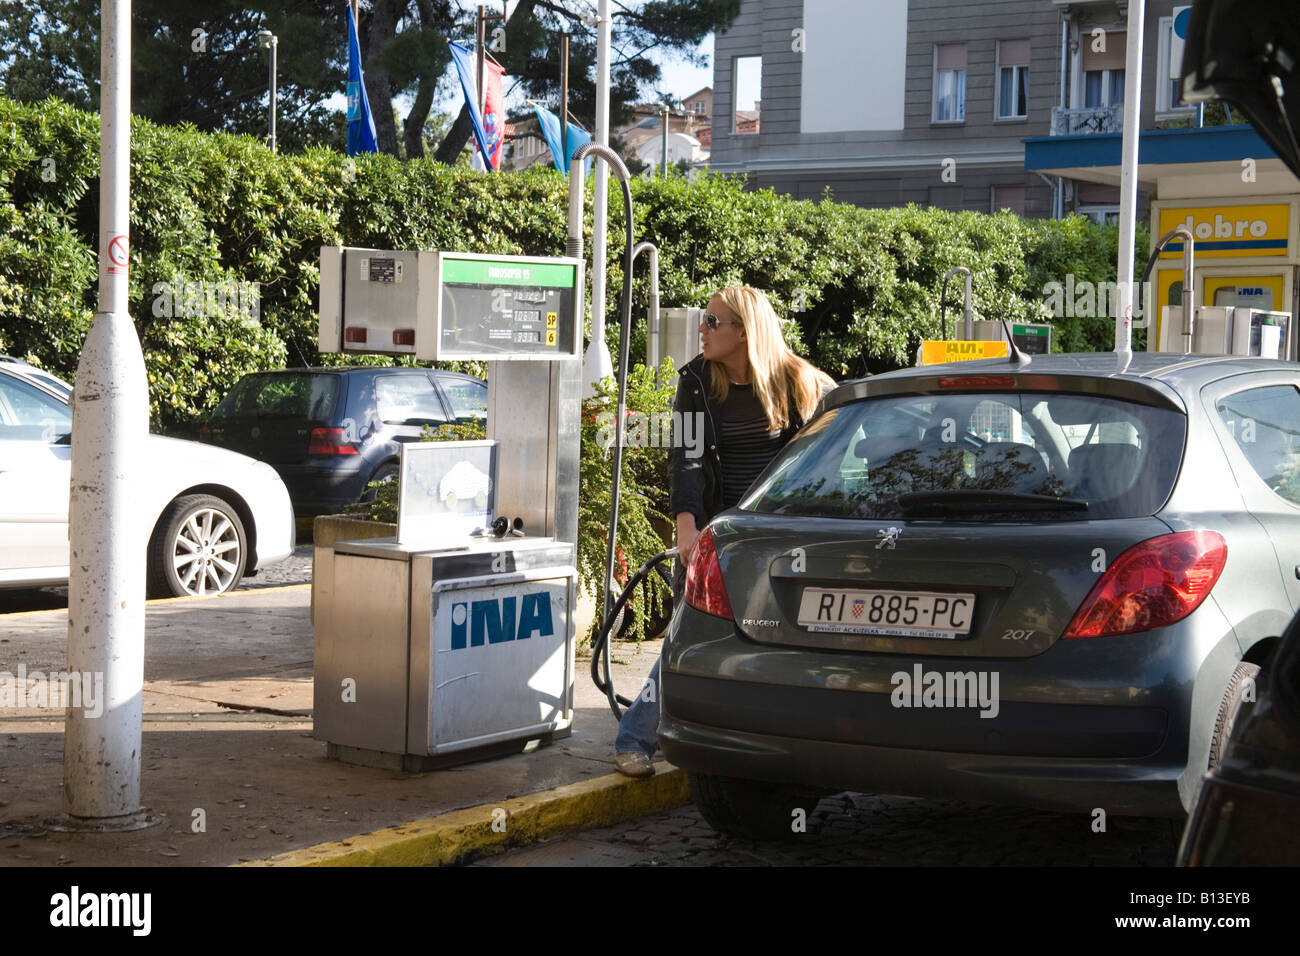 Croatia Europe May Blonde haired woman in a petrol station filling up her car with fuel - Stock Image